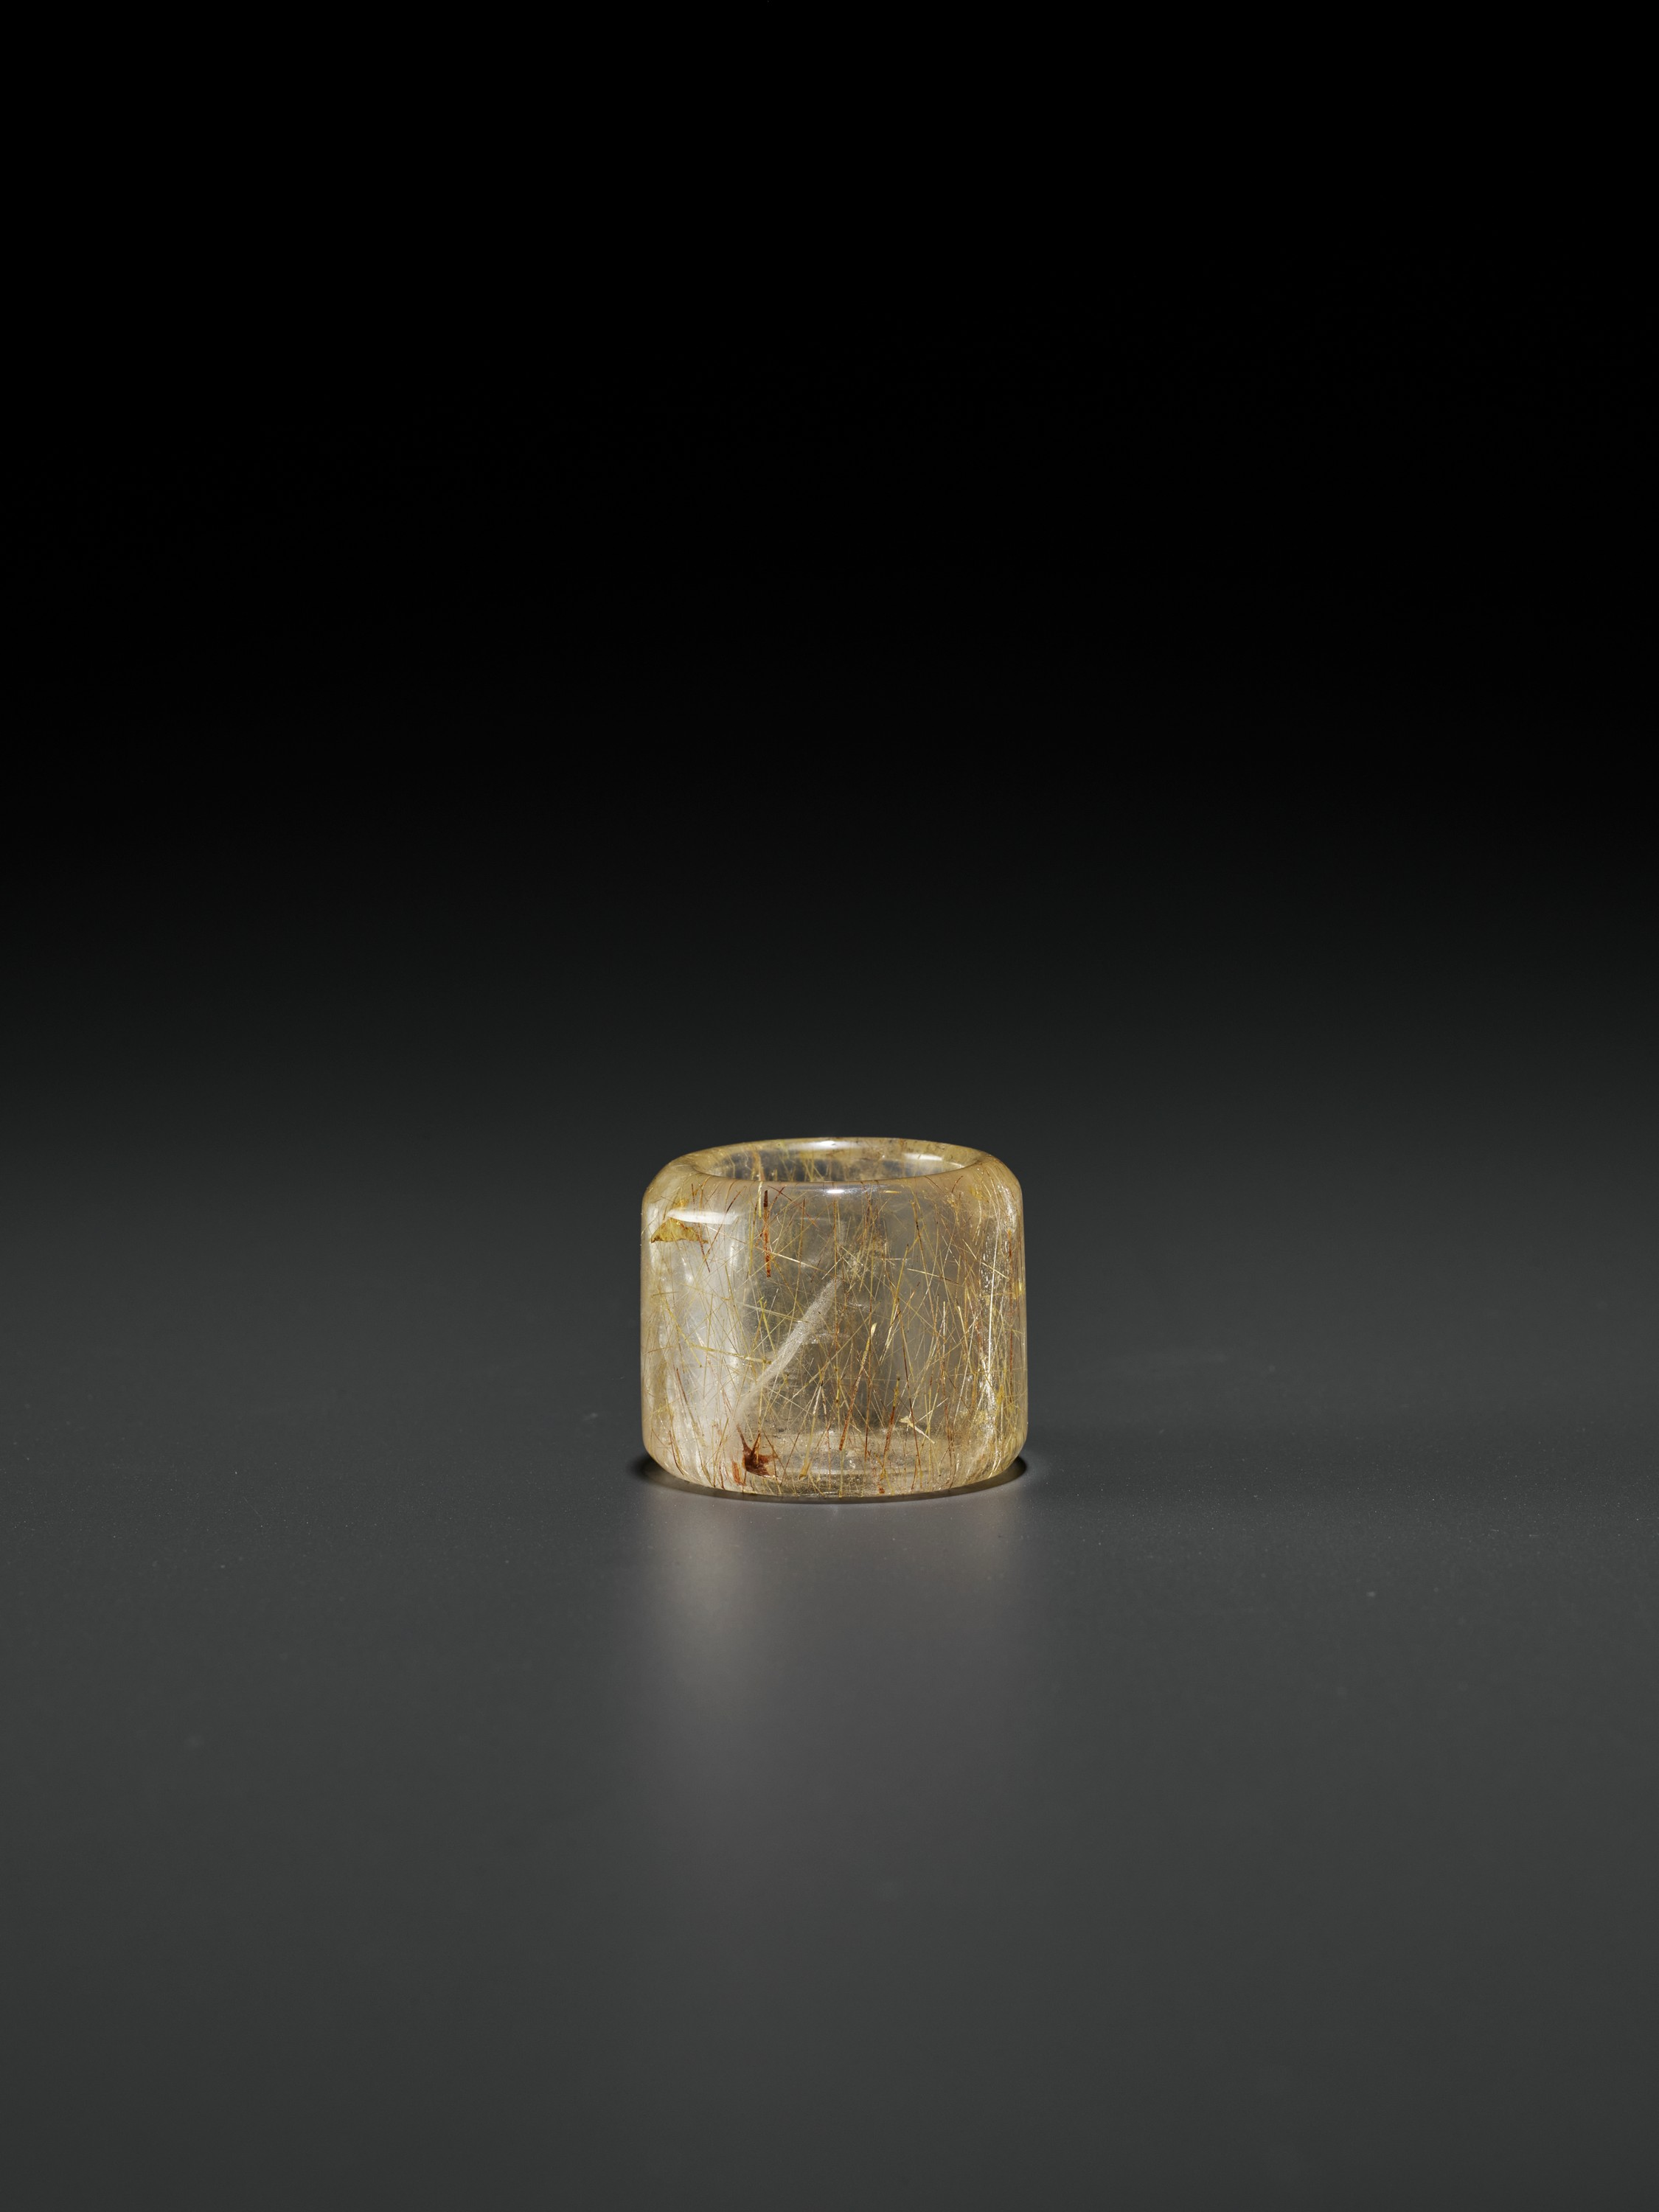 A 'HAIR' CRYSTAL ARCHER'S RING, QING DYNASTY - Image 4 of 9